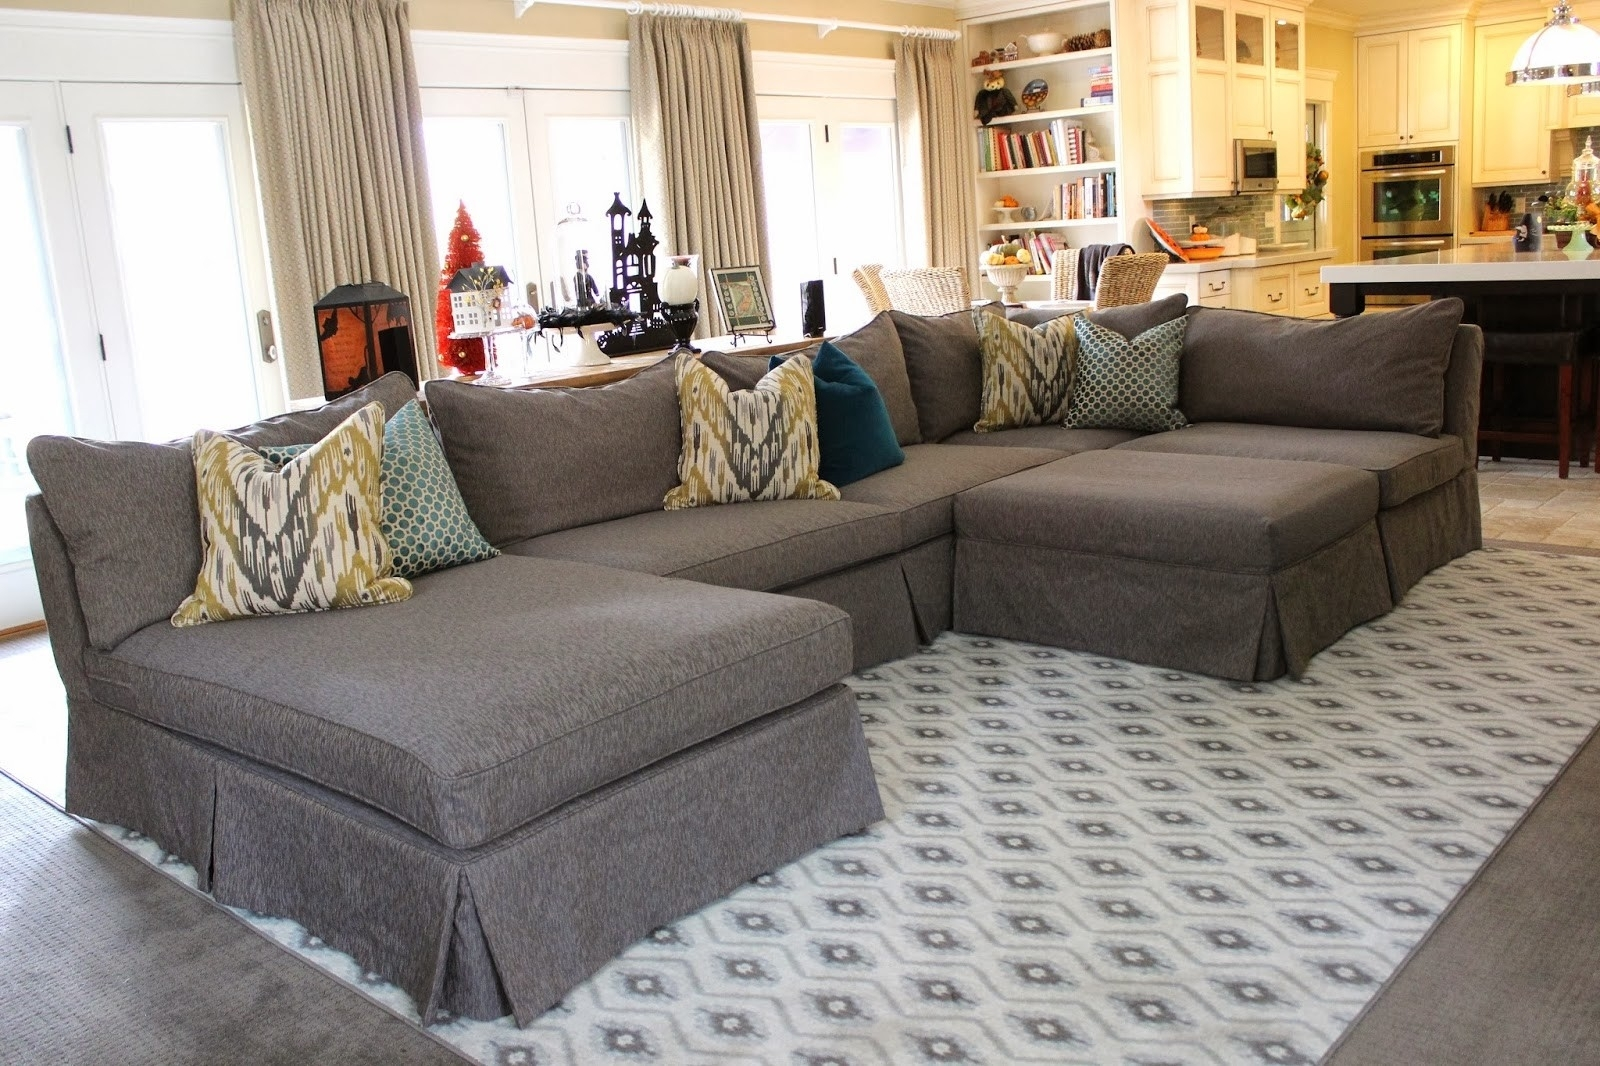 2 Piece Sectional Sofa Slipcovers – Home Decor 88 Within Avery 2 Piece Sectionals With Laf Armless Chaise (Image 1 of 25)